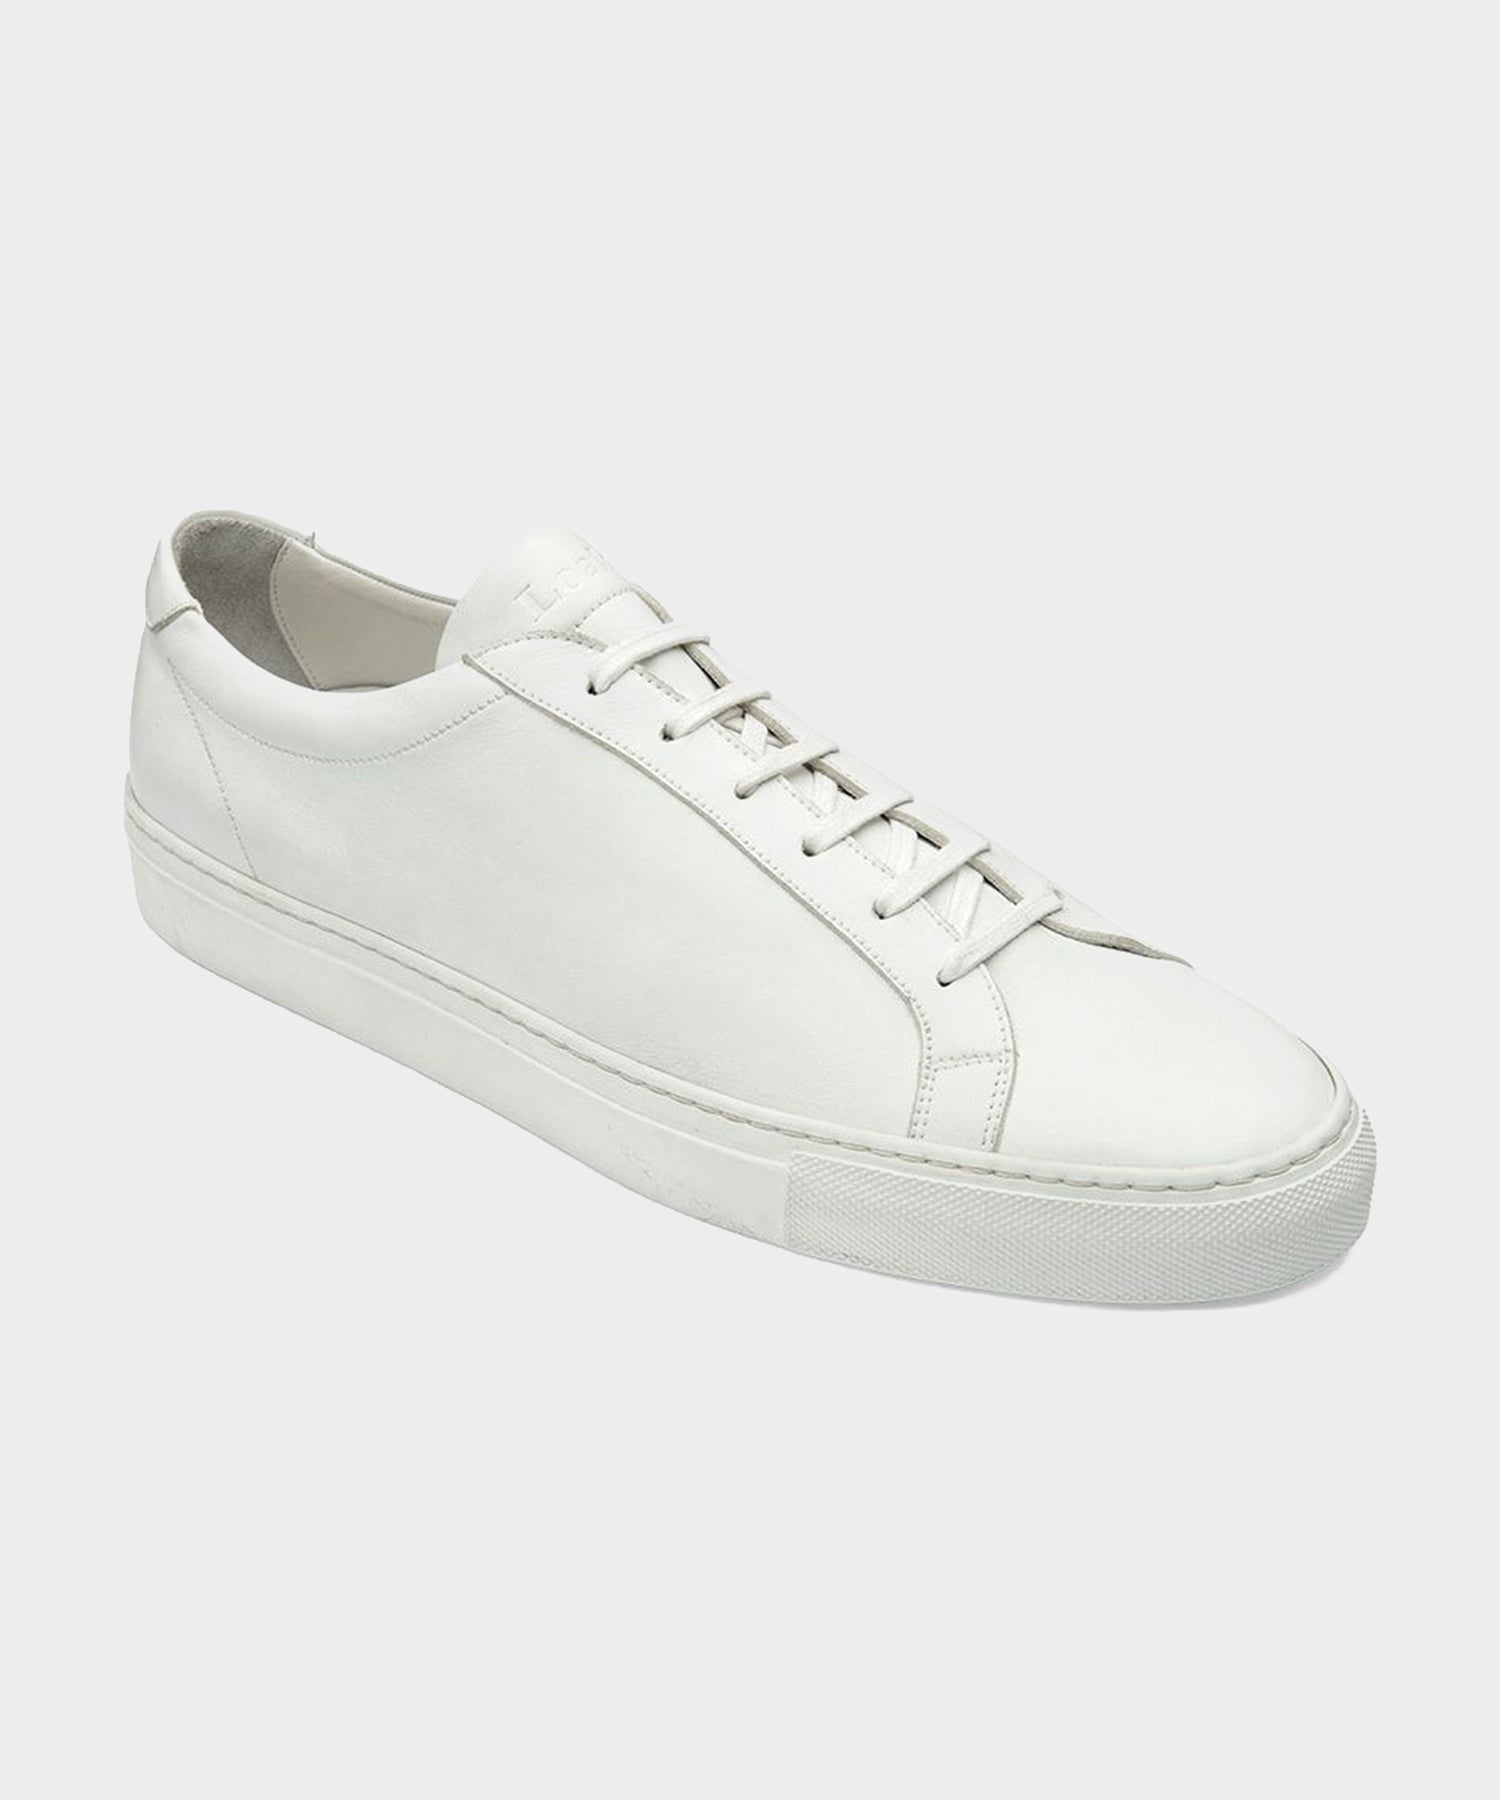 Loake Spirit Leather Sneaker in White